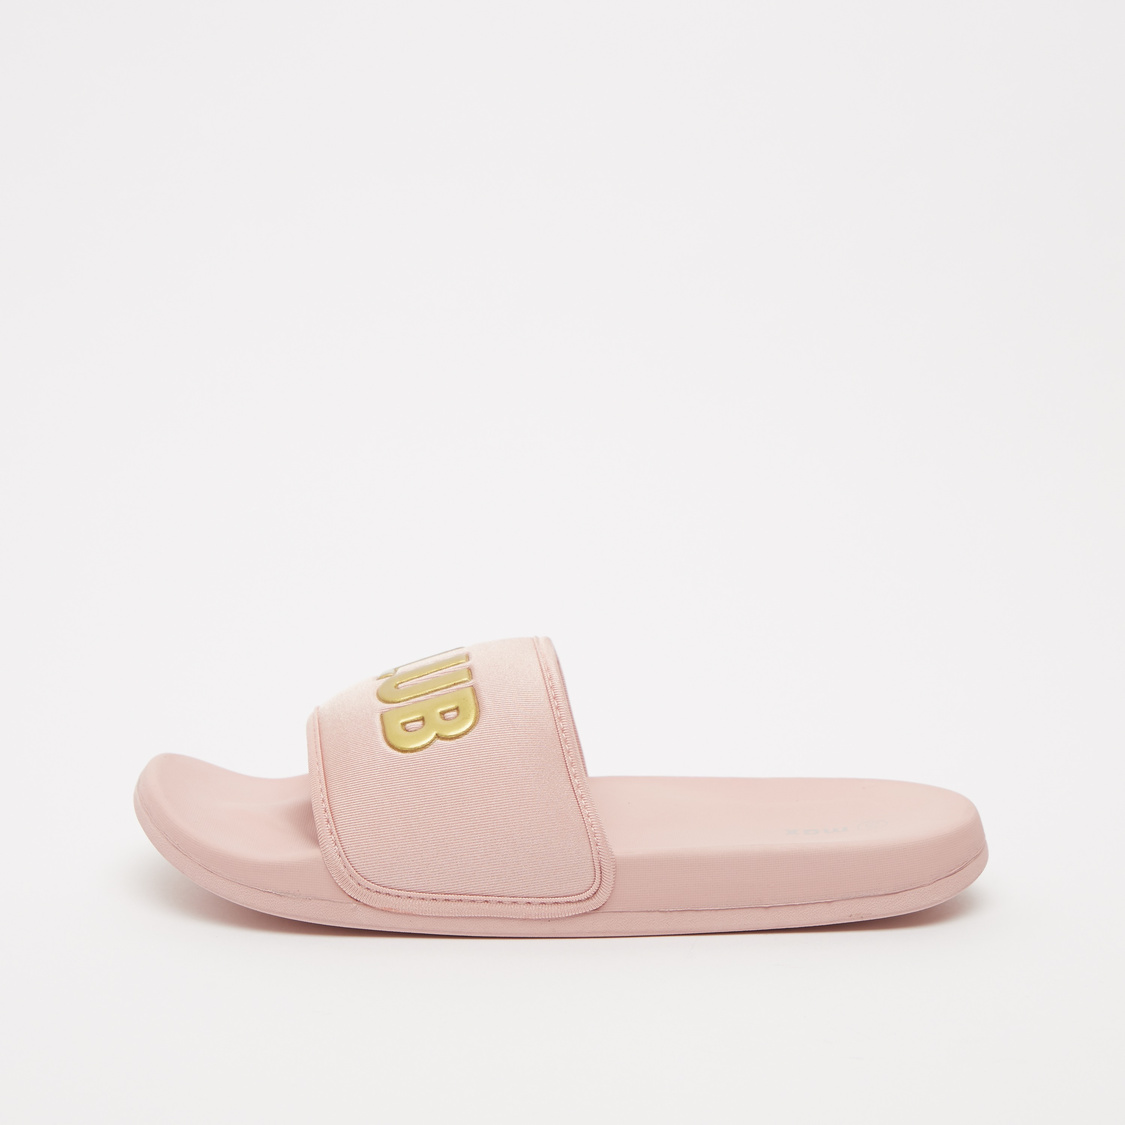 Printed Slides with Midsole Strap